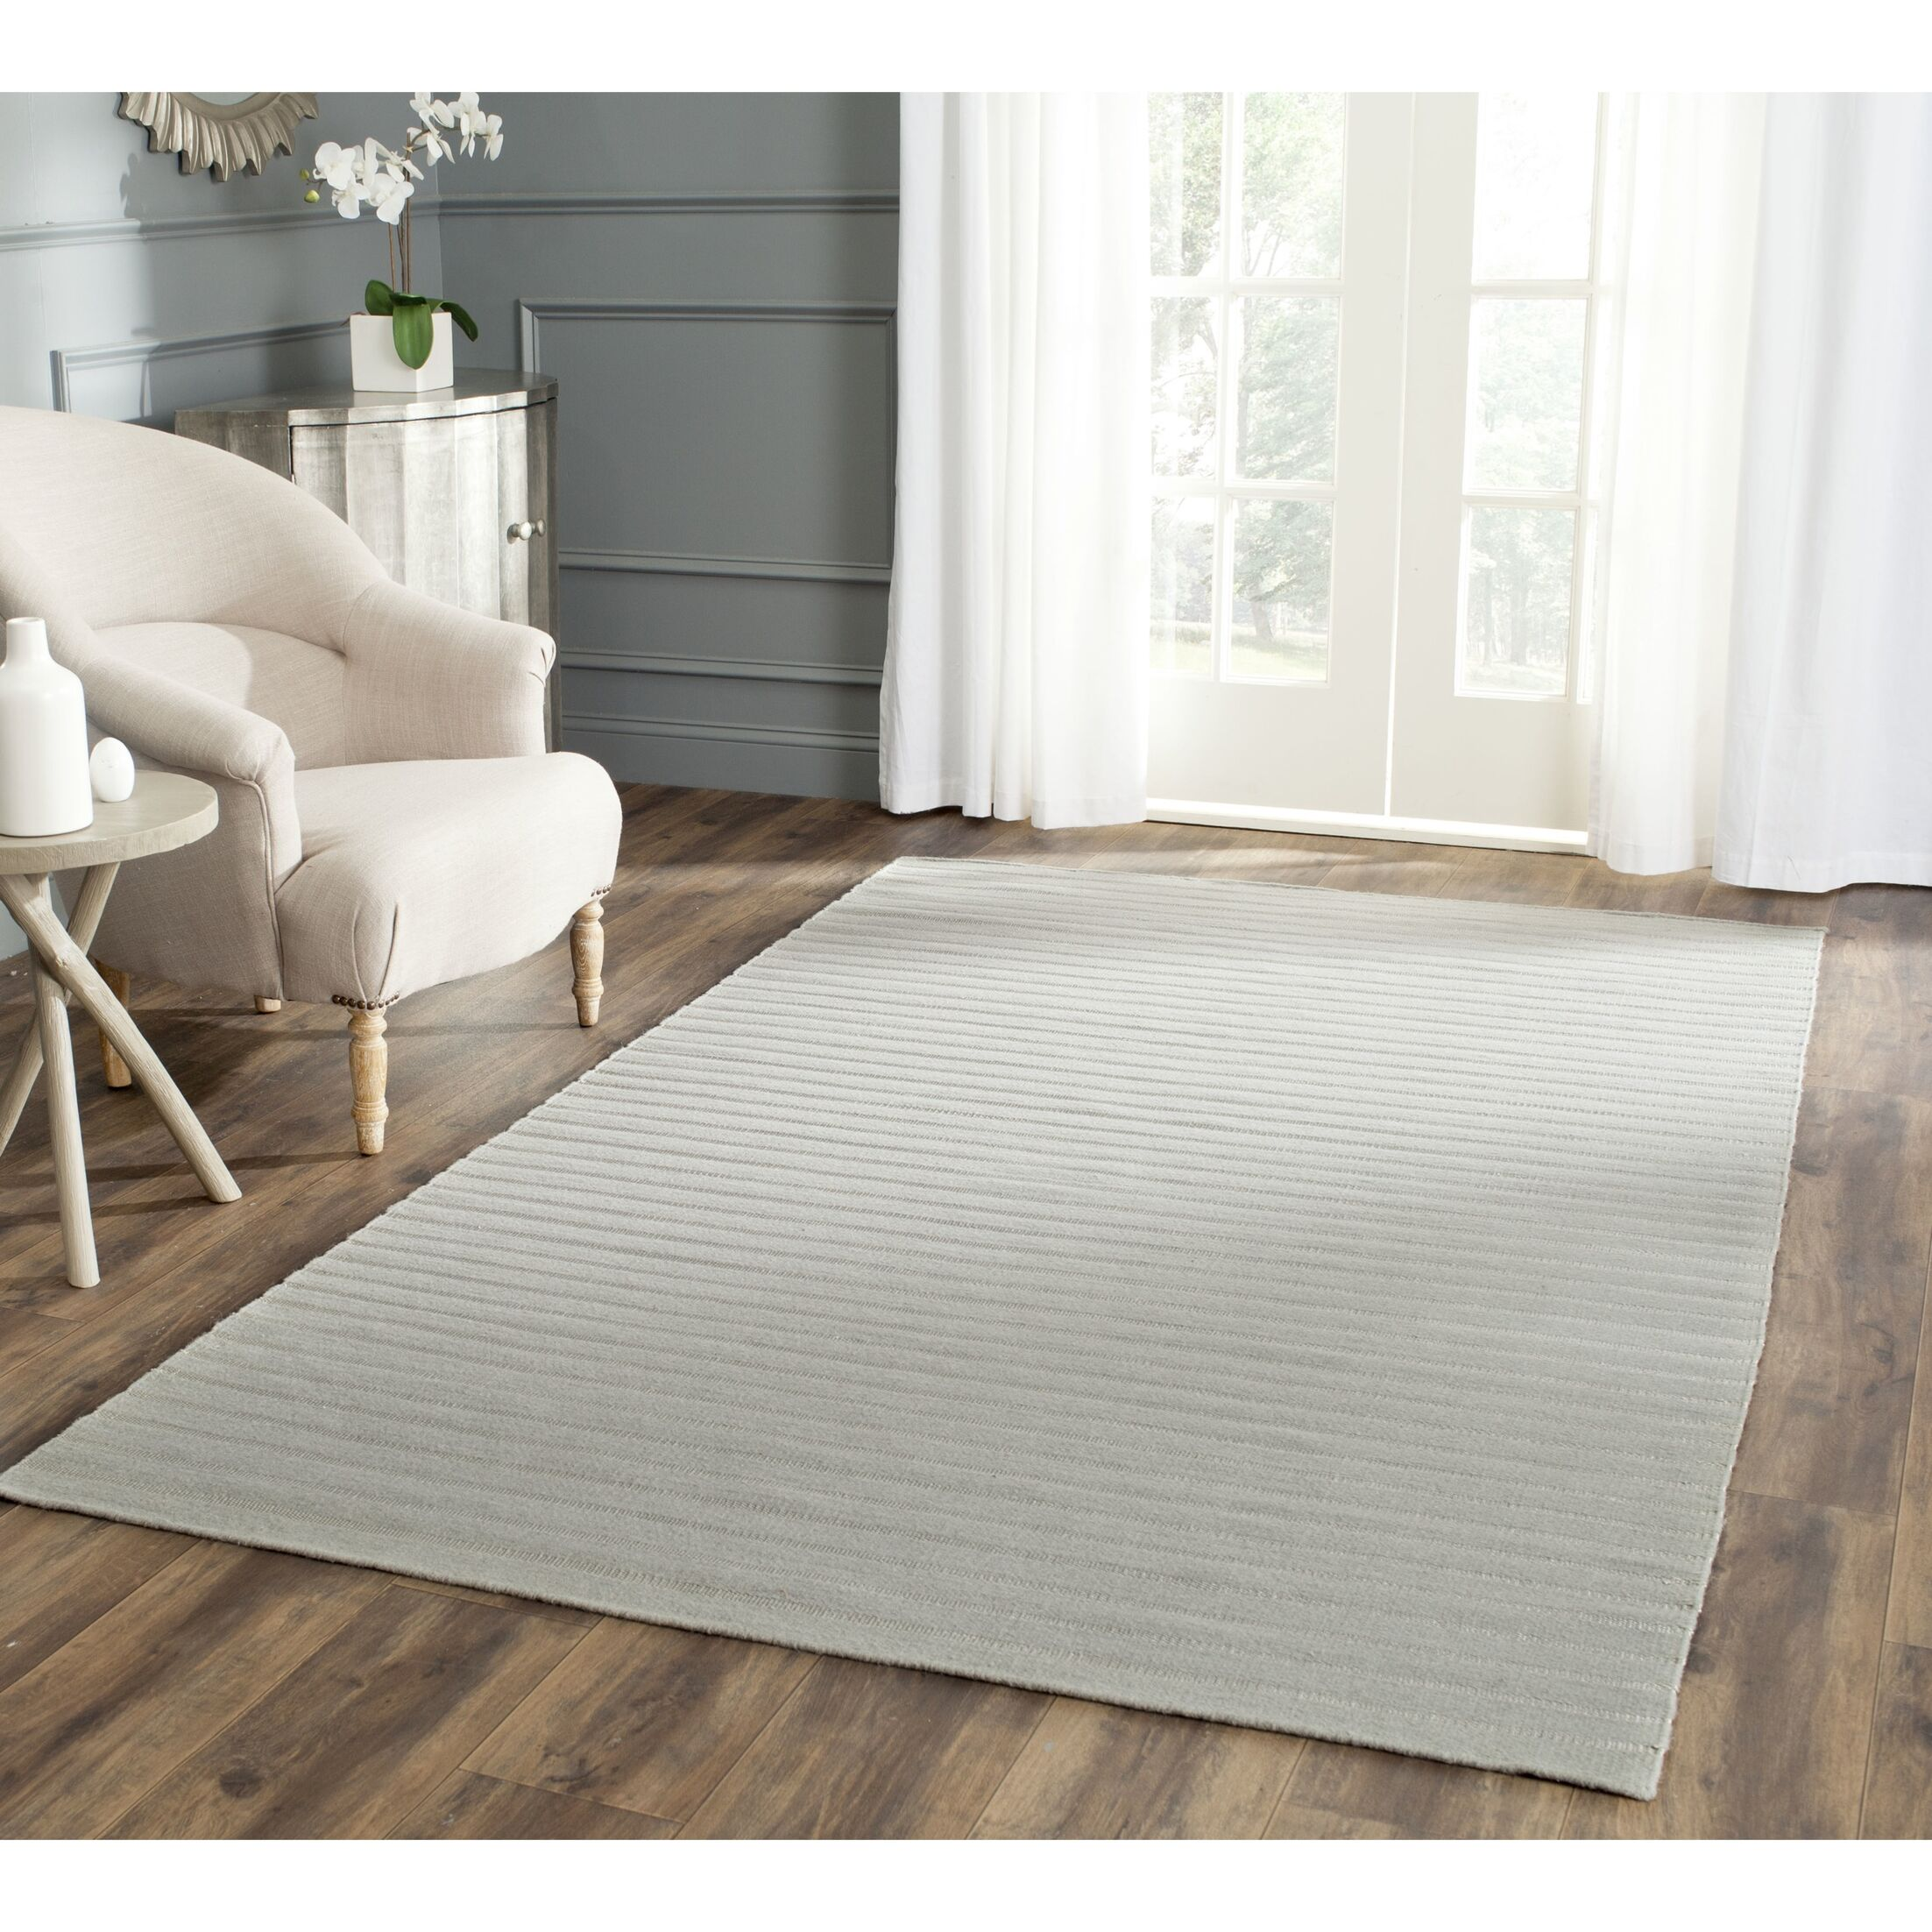 Dhurries Hand-Woven Wool Gray Area Rug Rug Size: Rectangle 5' x 8'